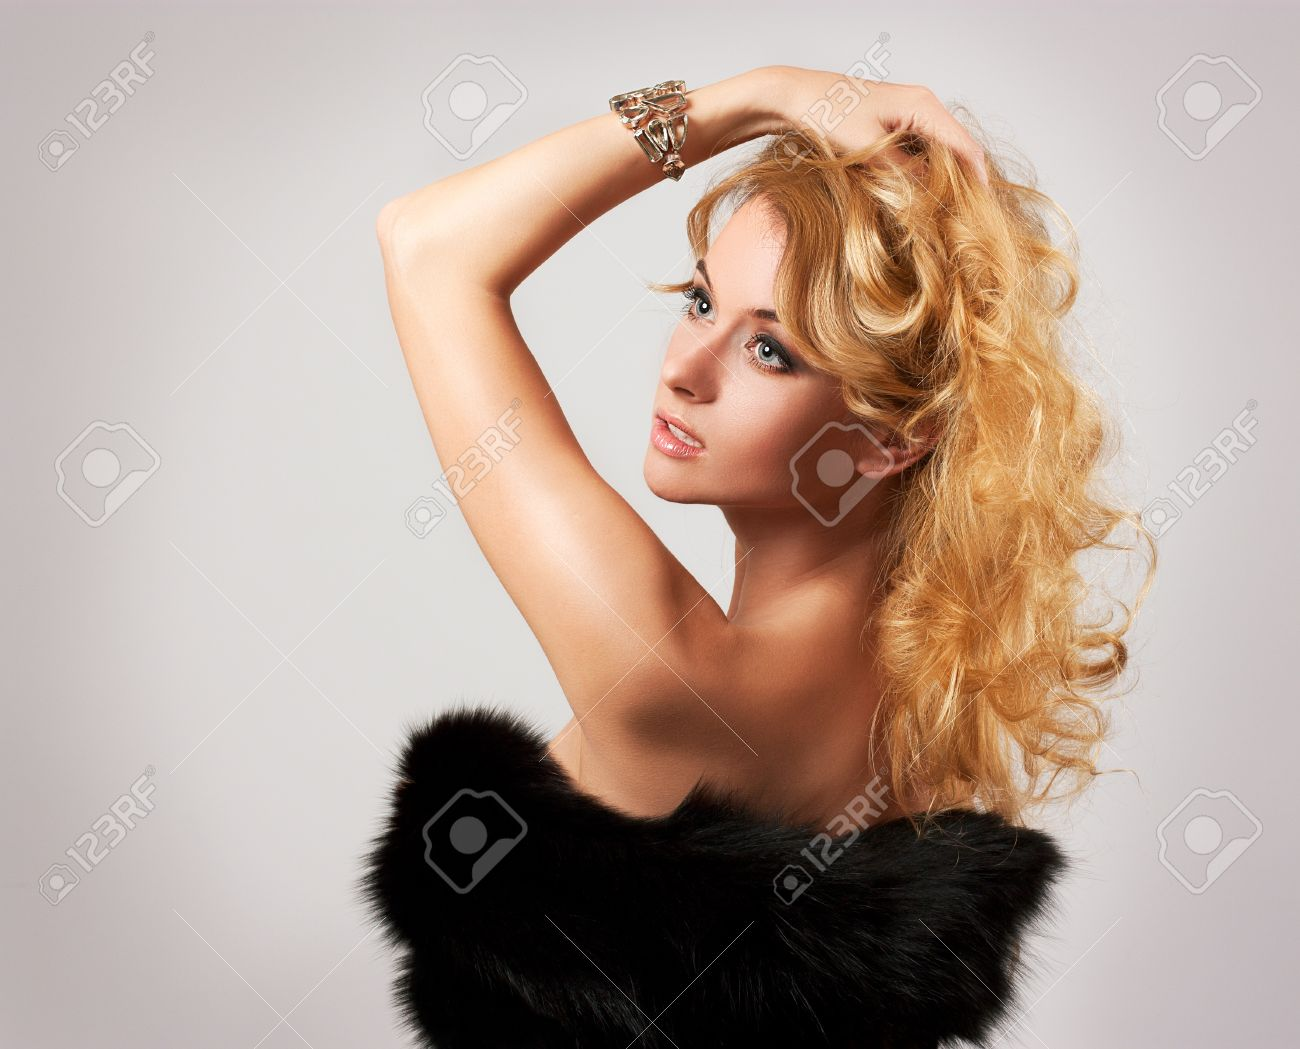 Portrait of Stylish Woman in Fur against Grey Background Stock Photo - 16969583